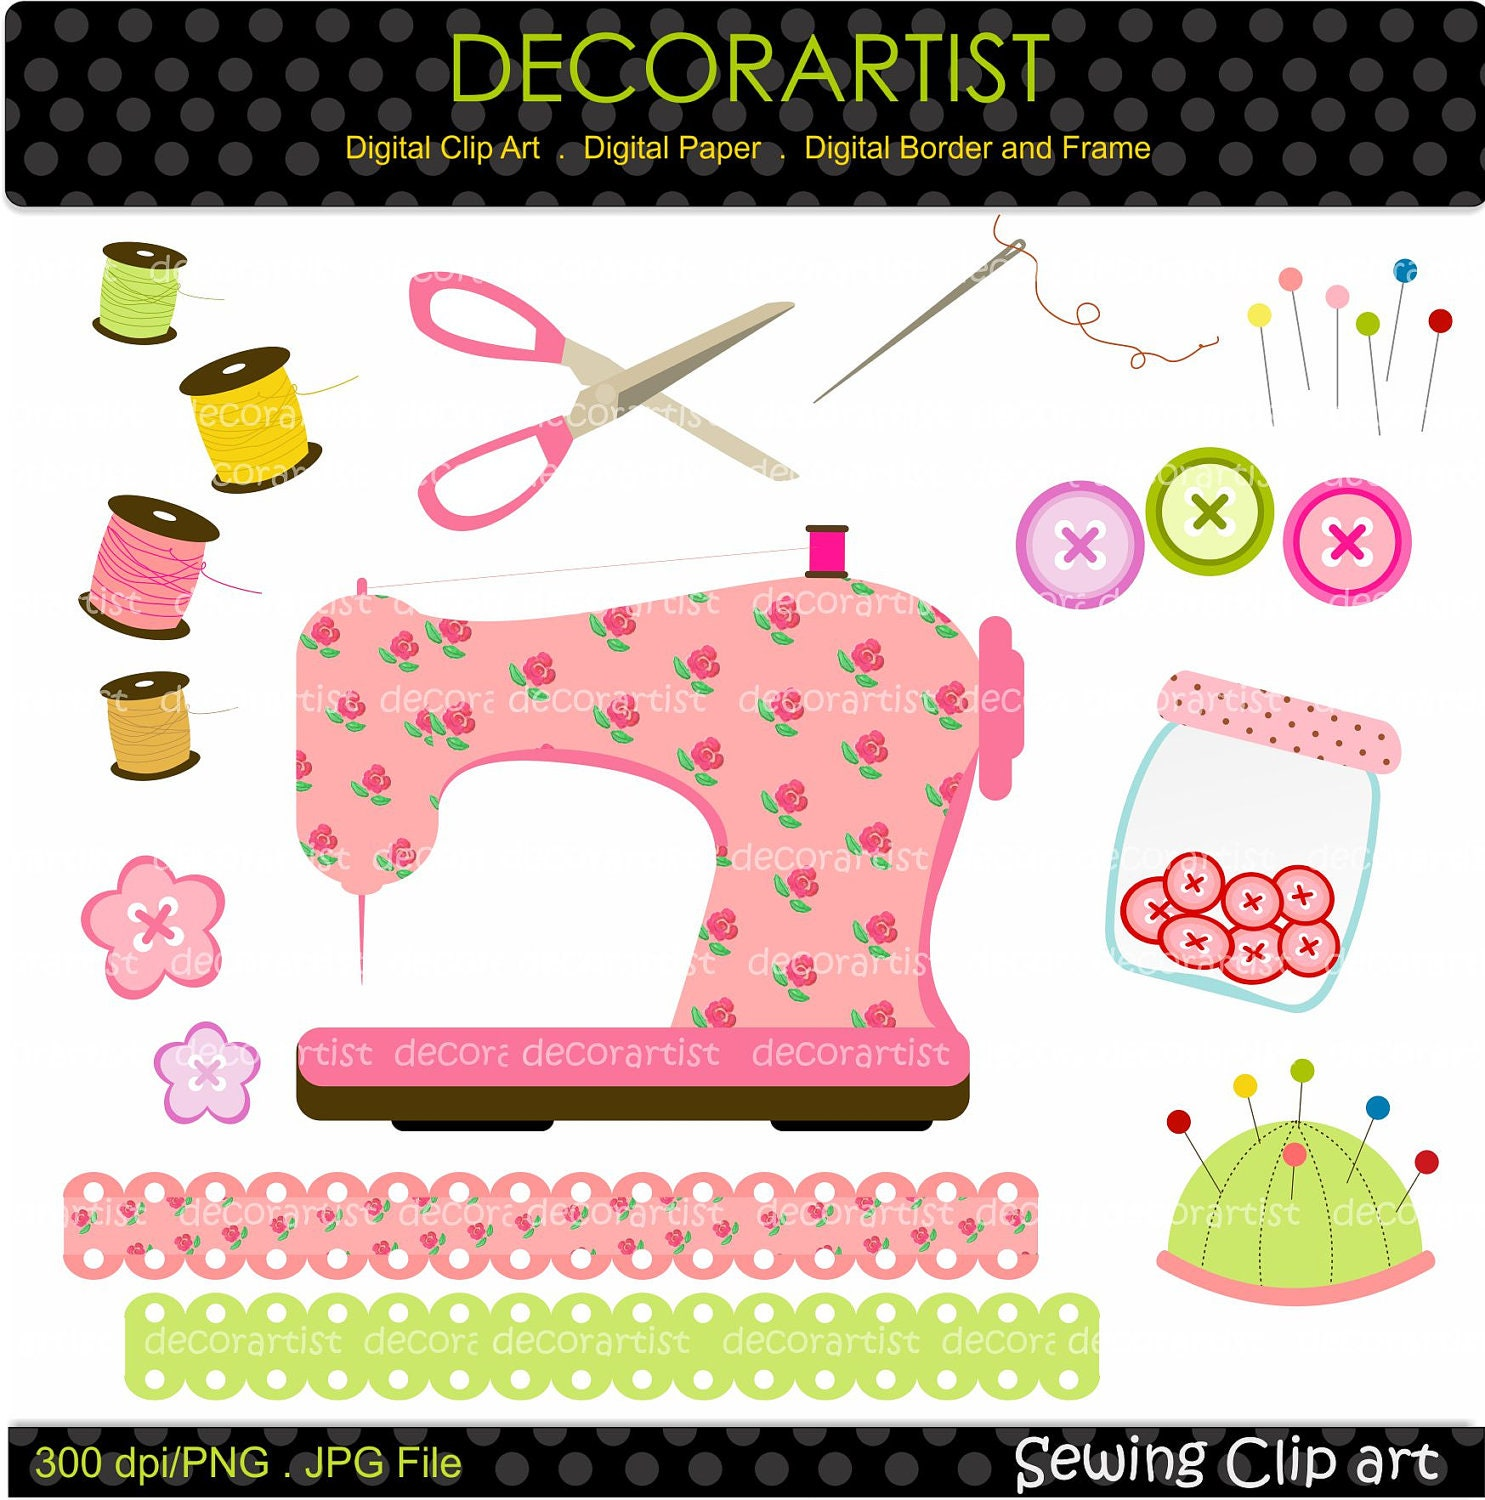 Sewing clip art sewing machine craft digital clip by for Arts and crafts sewing machine